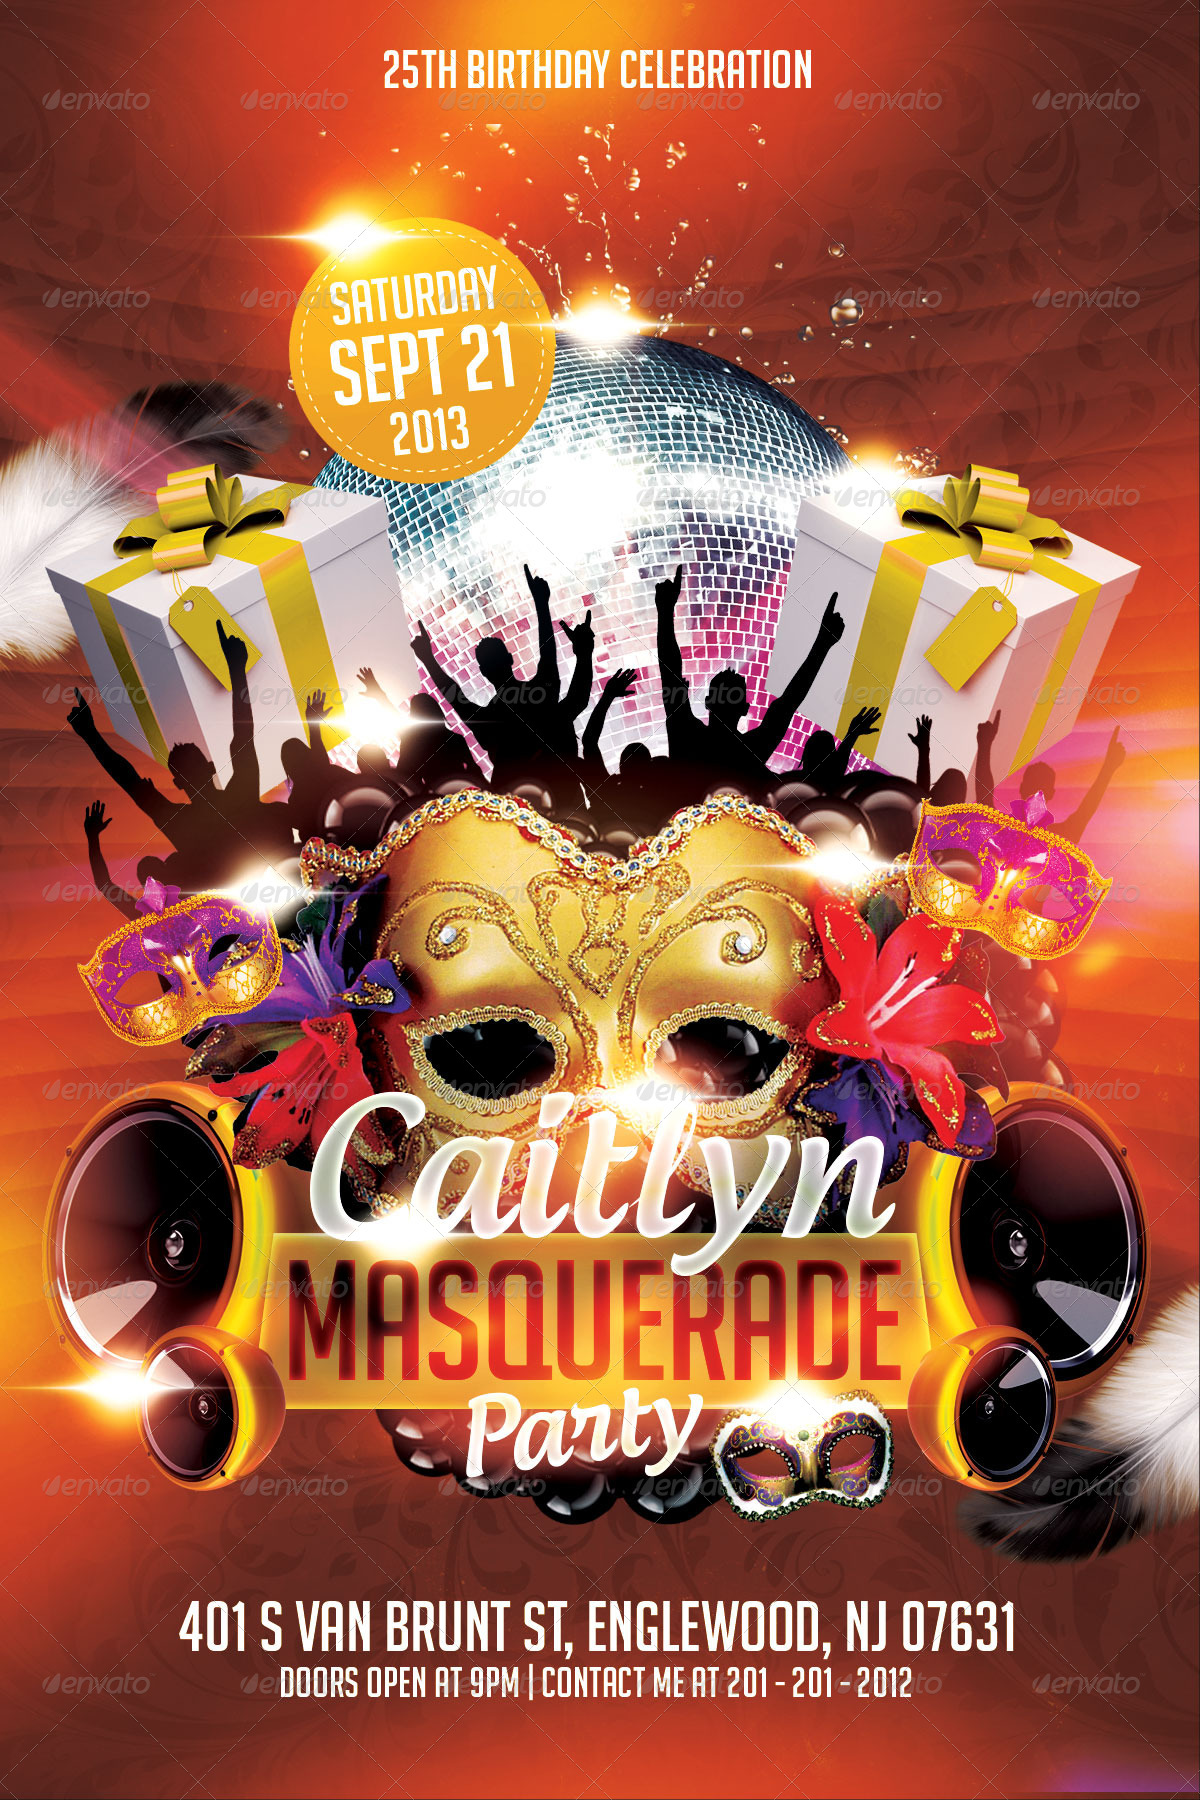 Masquerade Birthday Party Flyer Template Clubs Parties Events 01 Preview Jpg